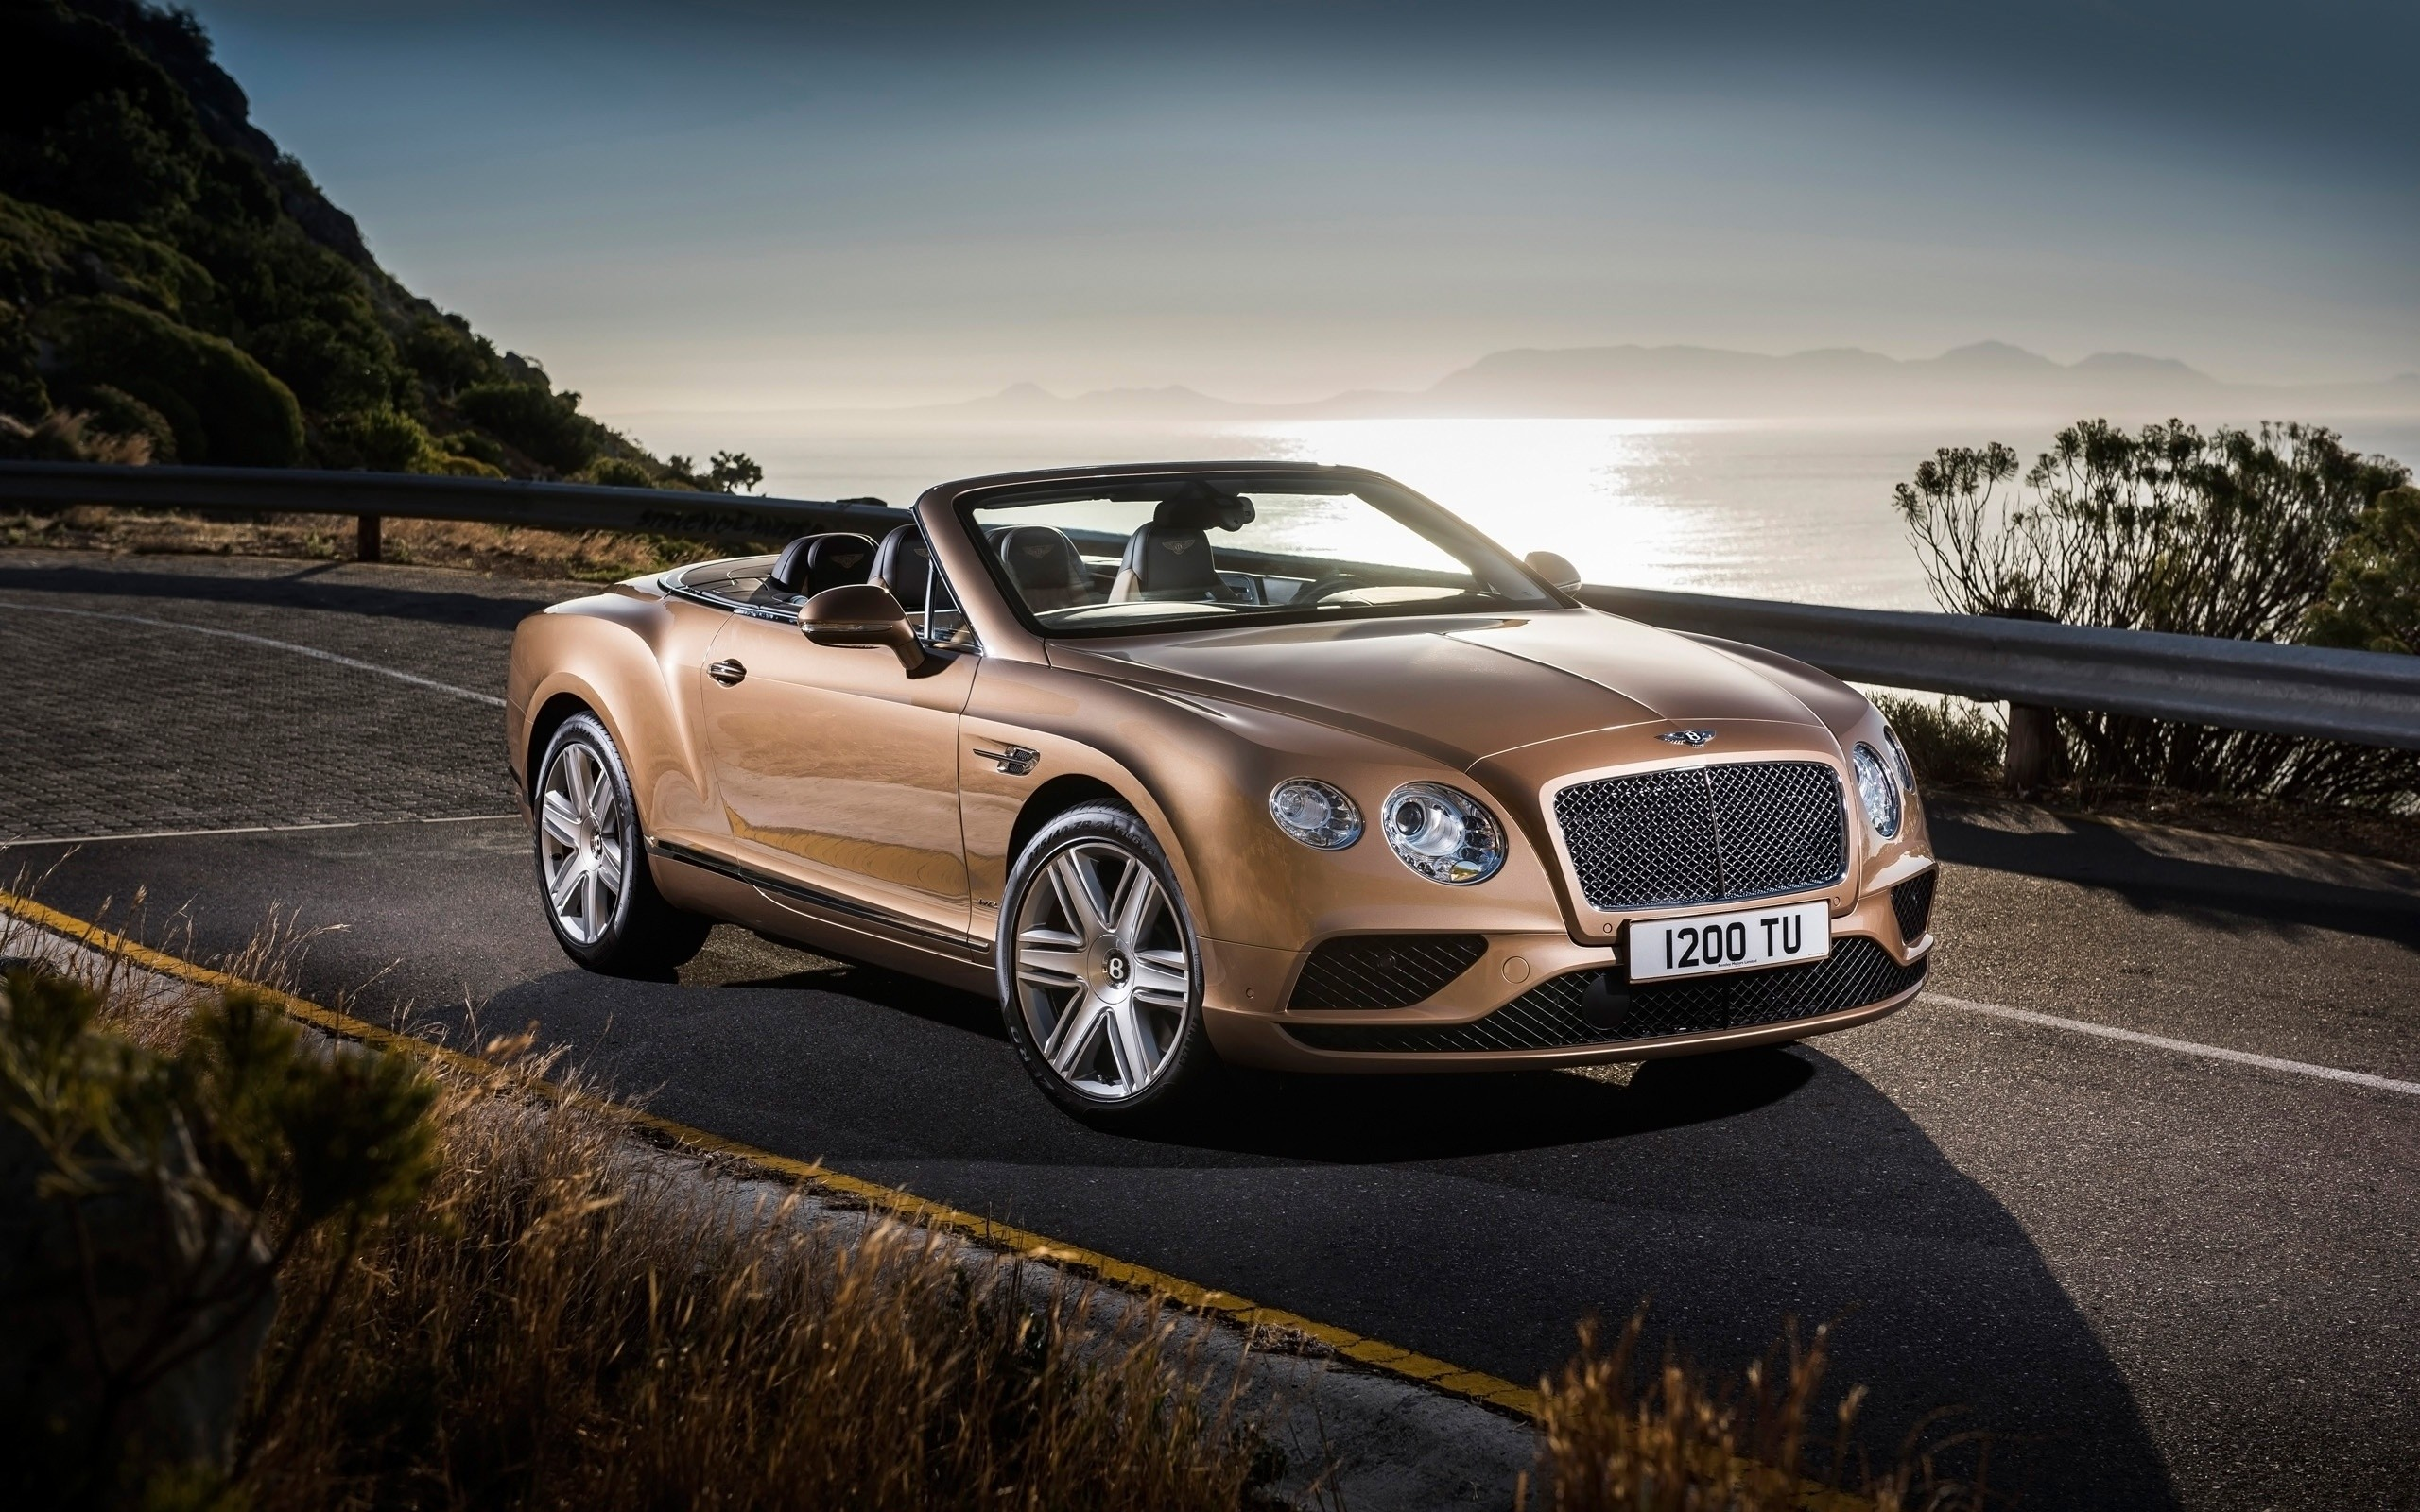 2015 Bentley Continental Gt Convertible Wide